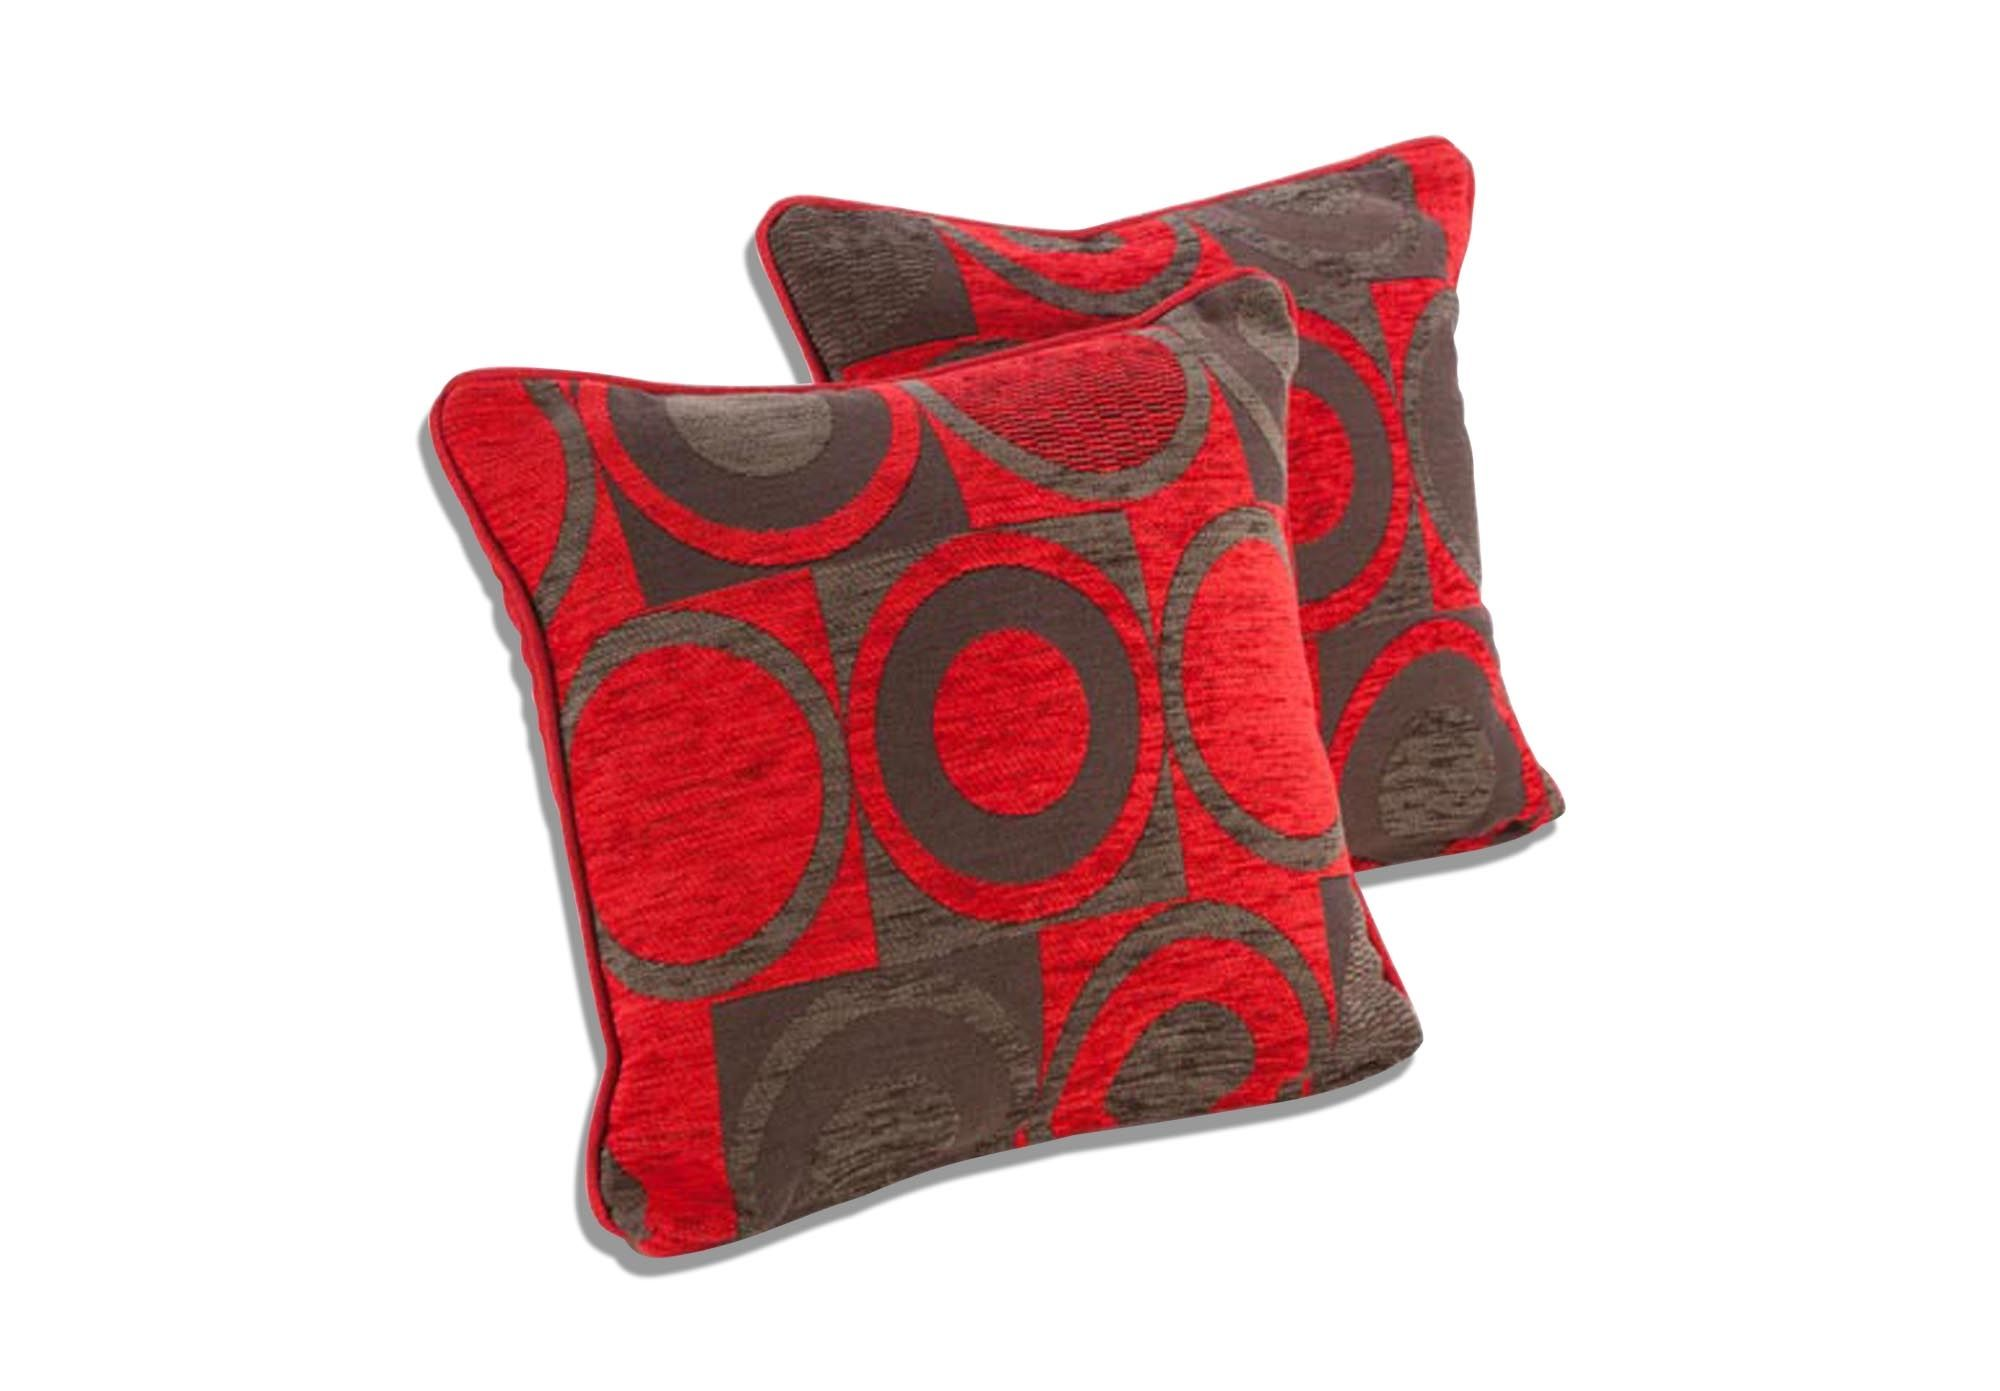 Captivating Pair Of Scatter Cushions   Desire   Living Room Furniture